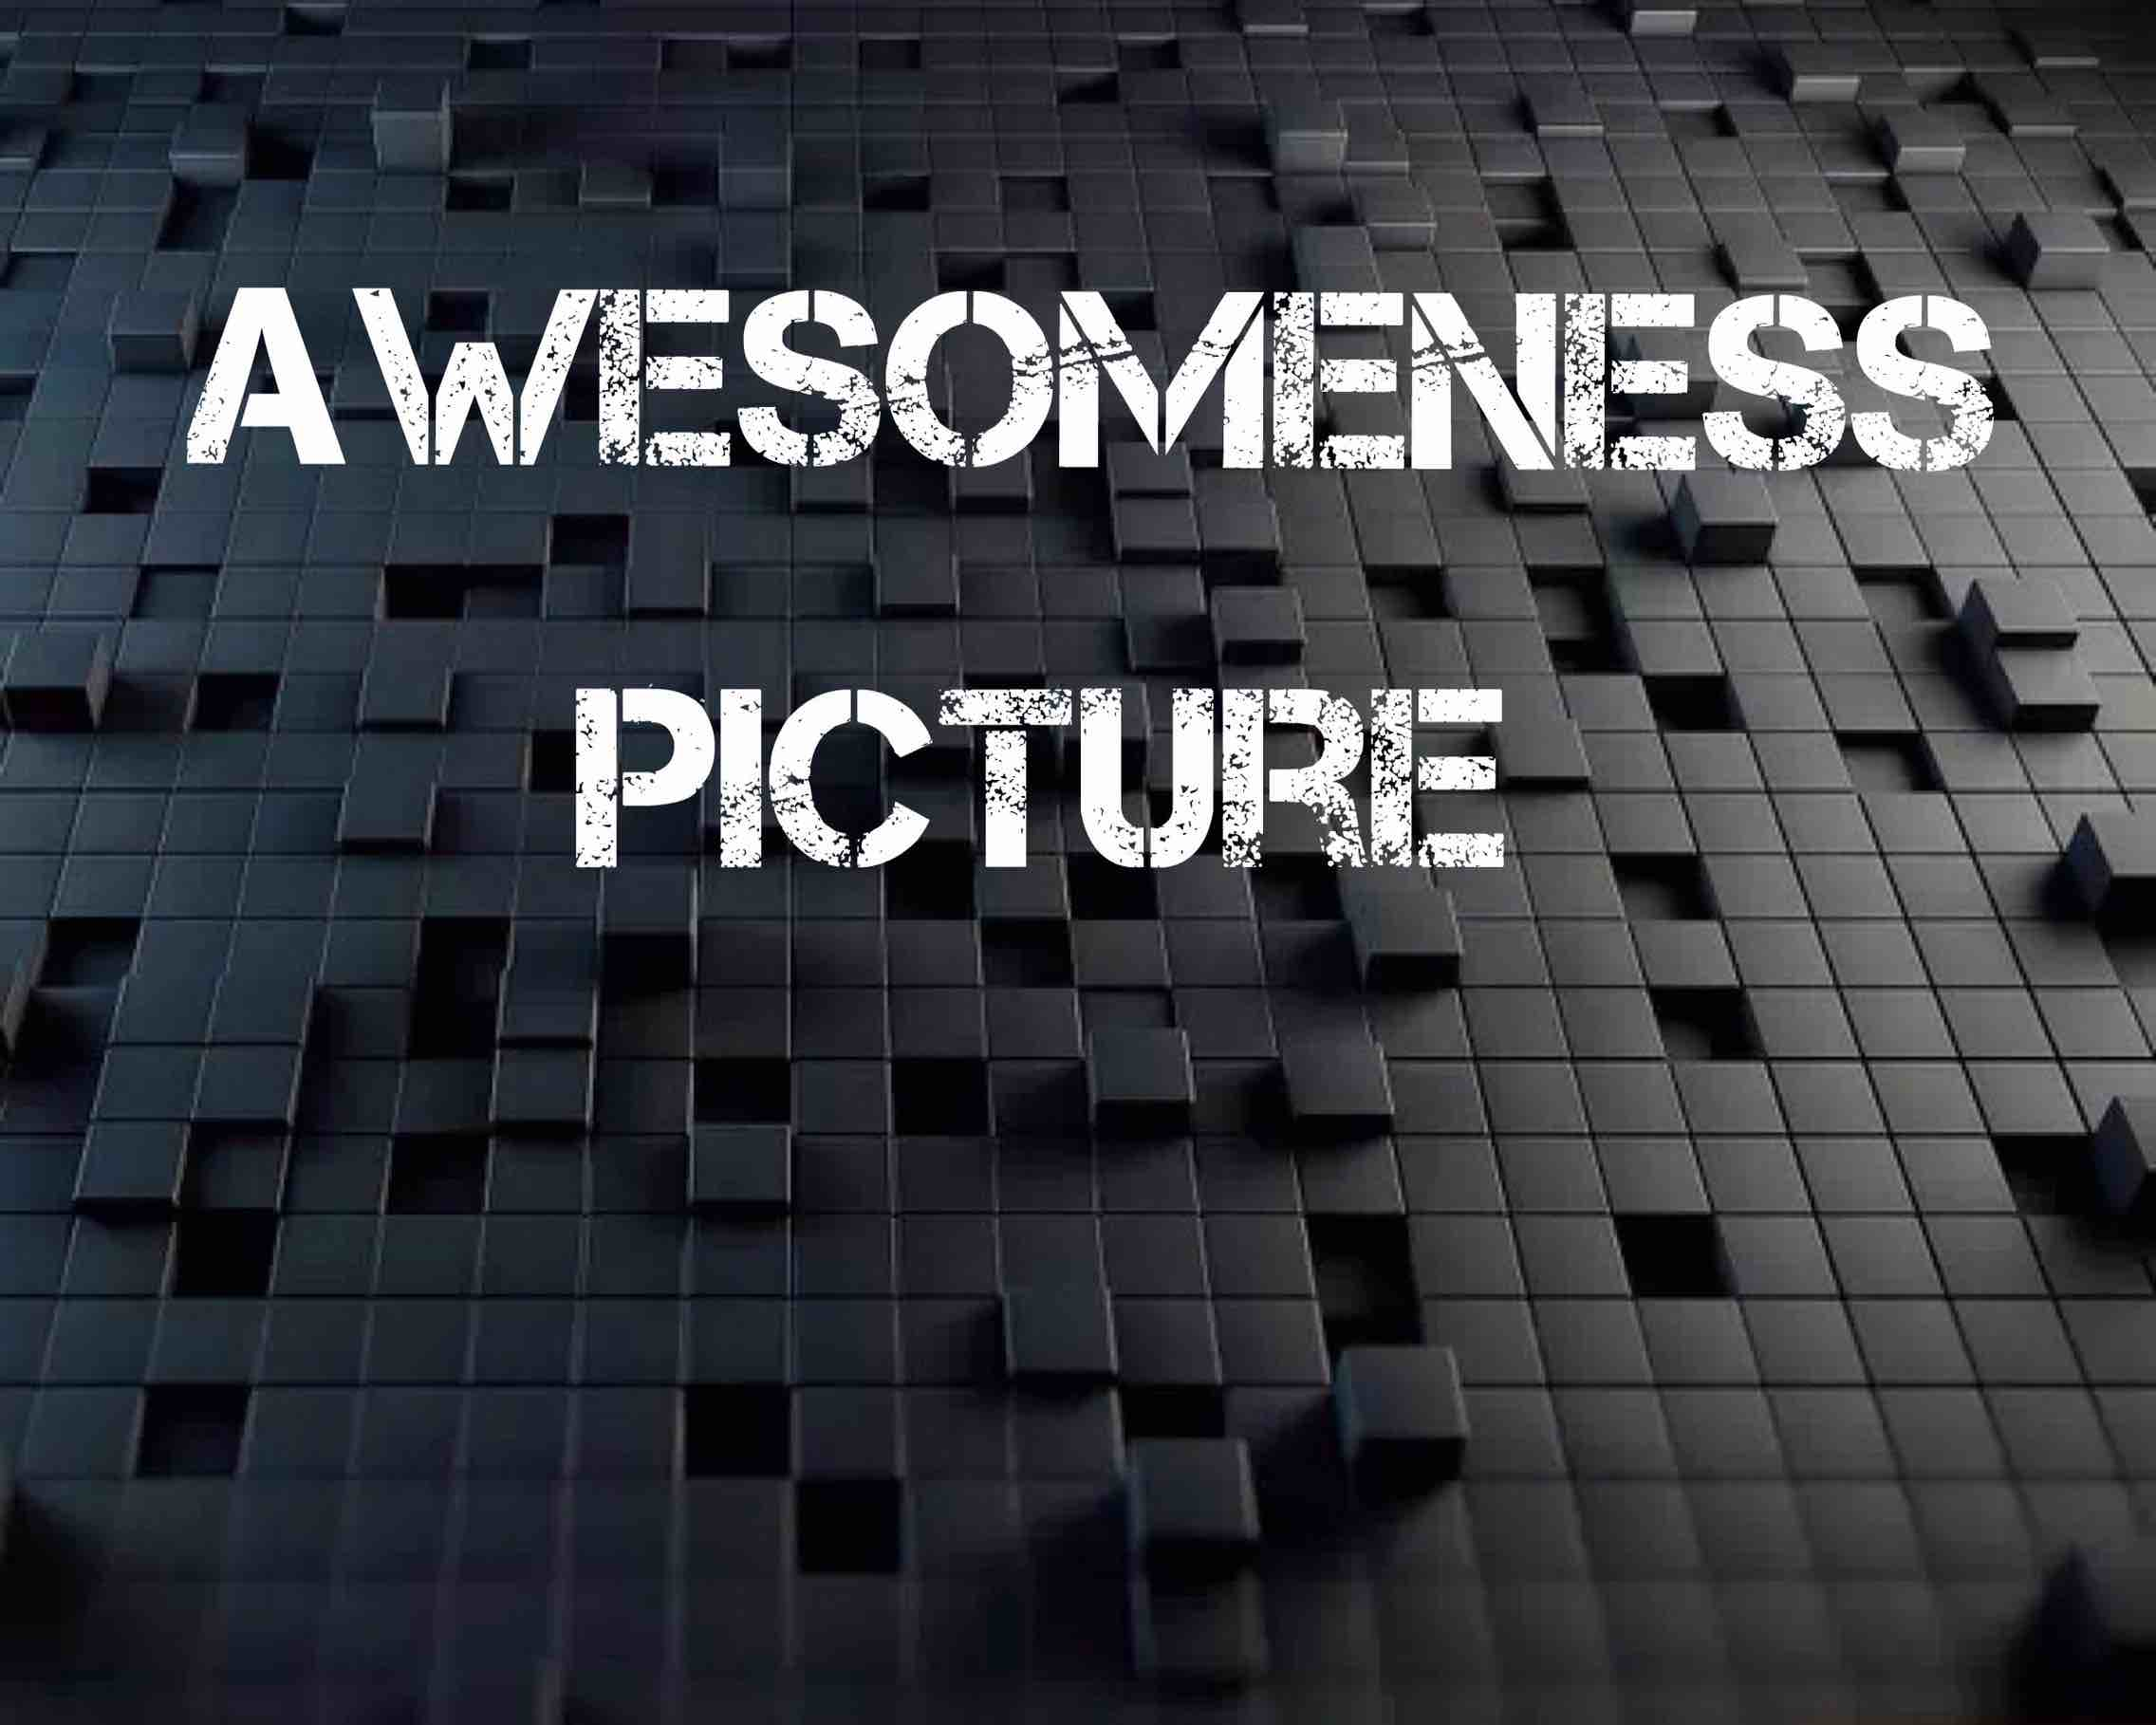 Awesomeness Picture